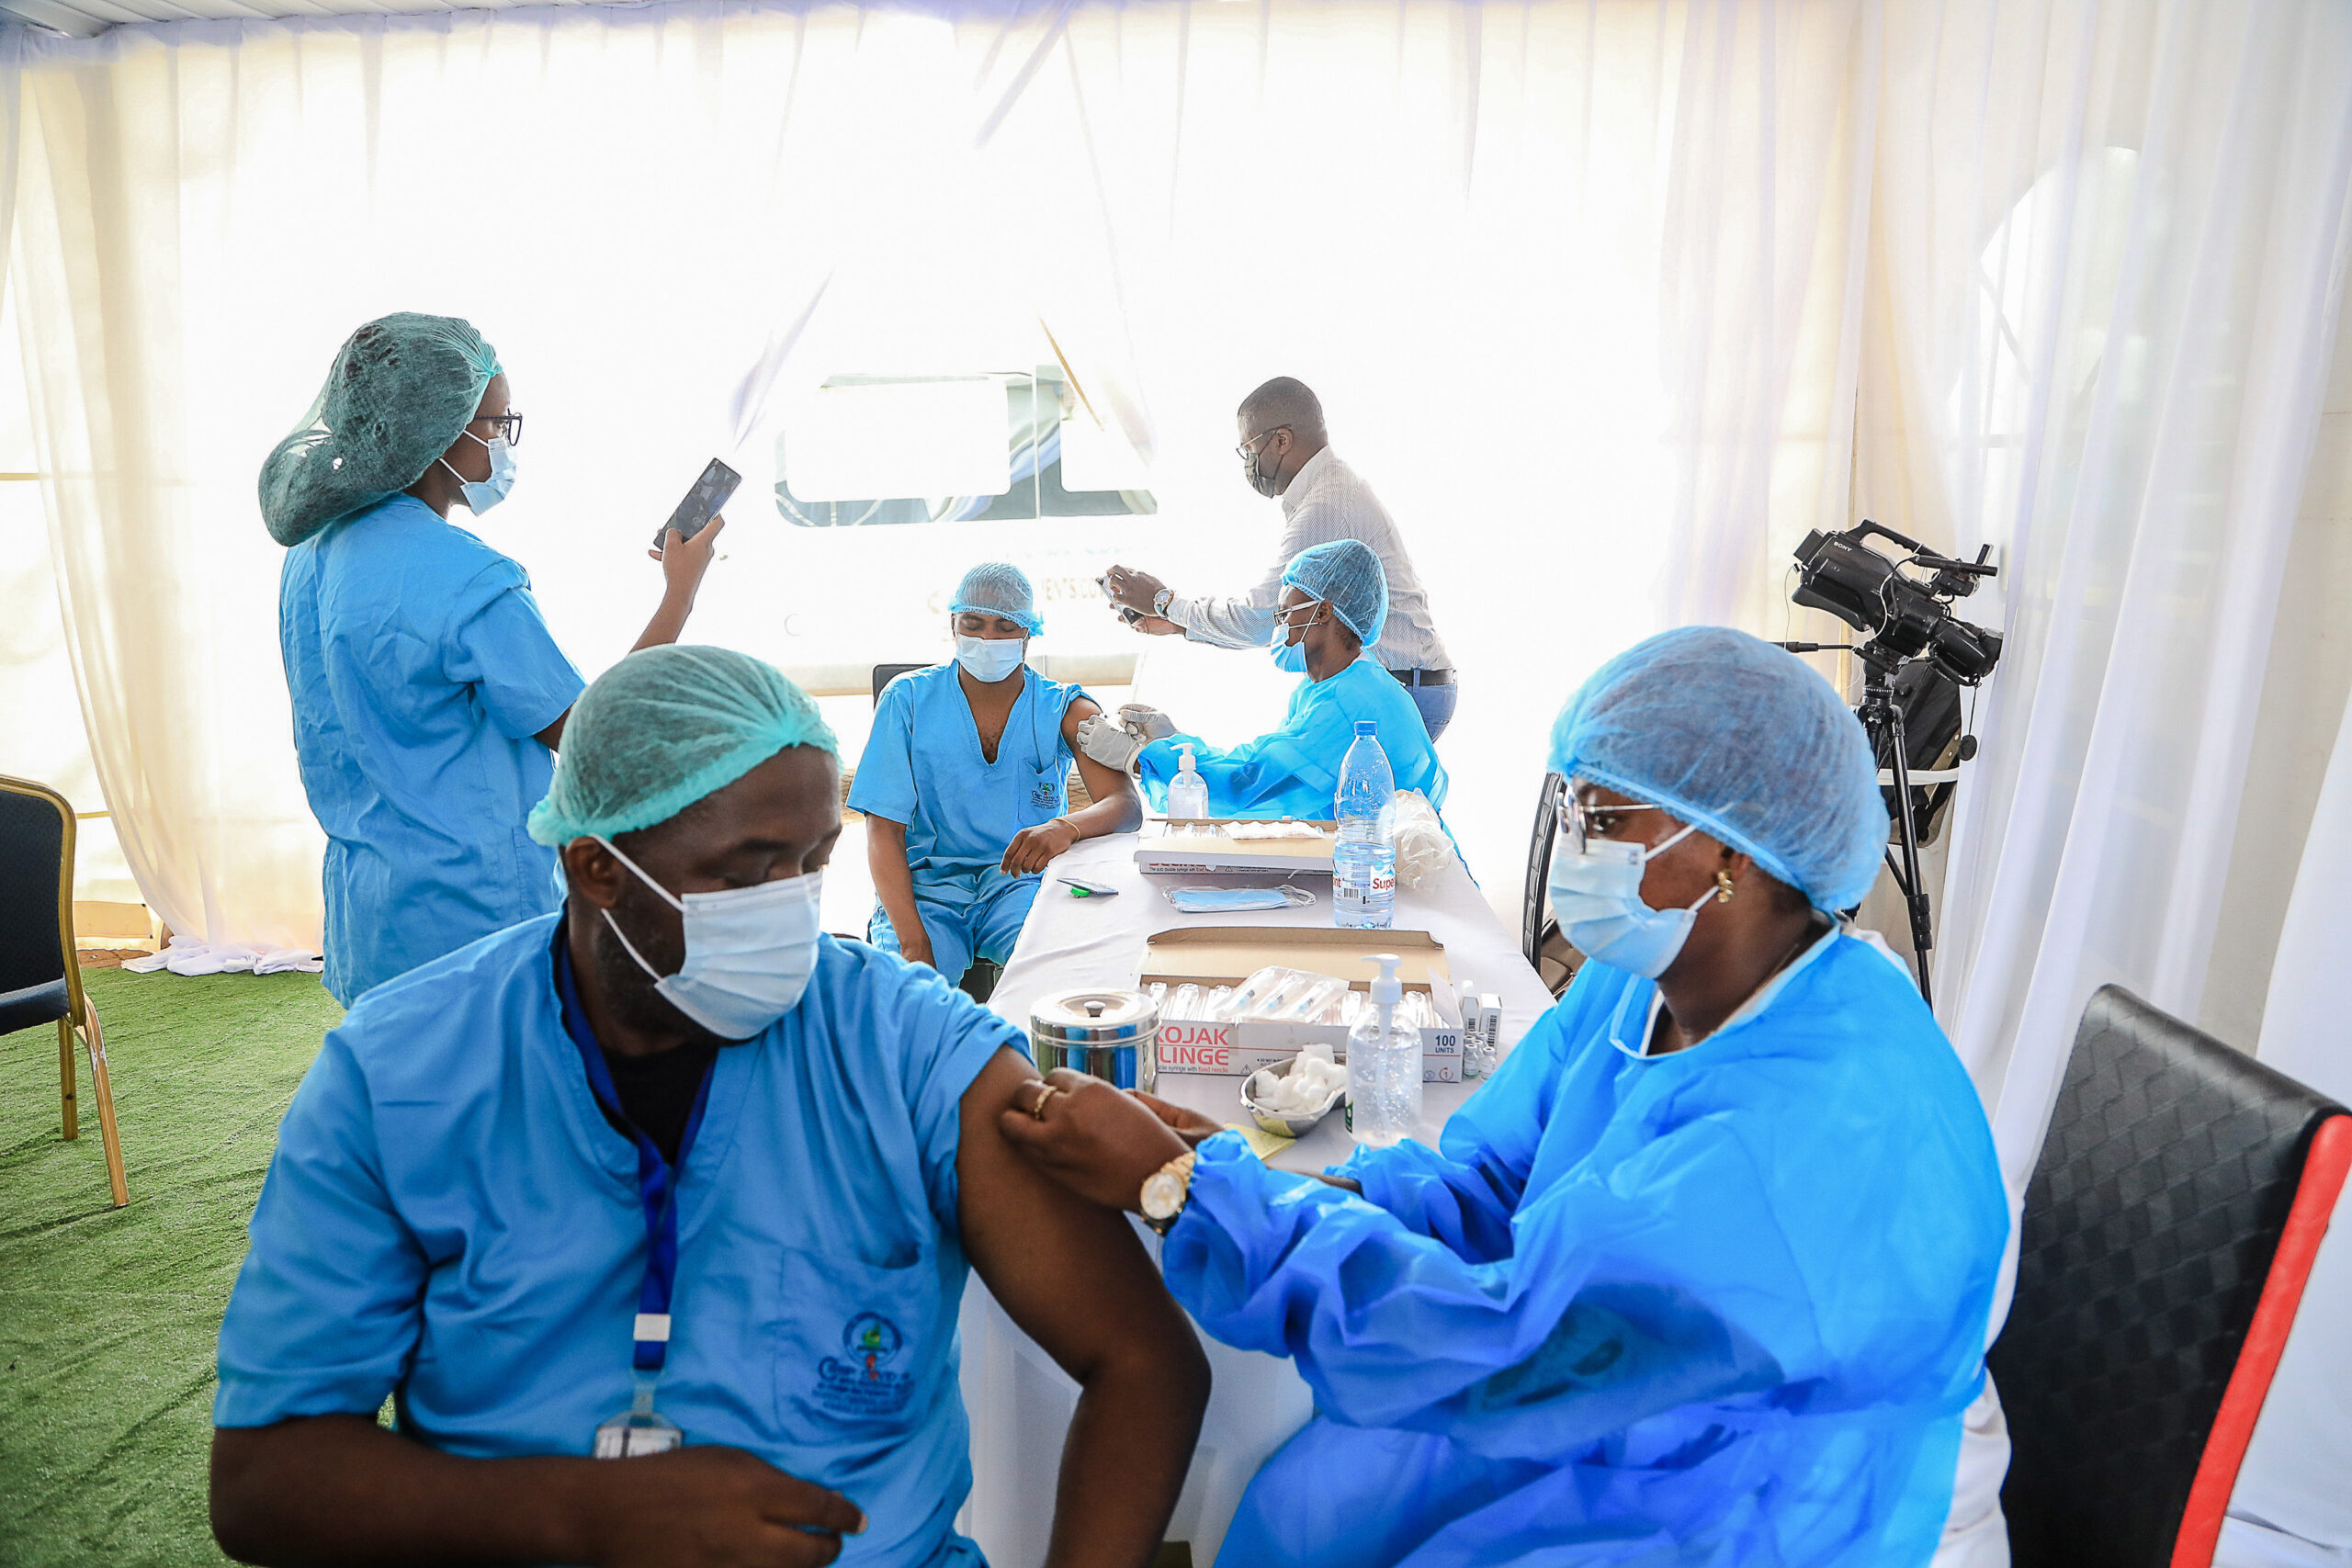 A new era of vaccine sovereignty in Africa beckons